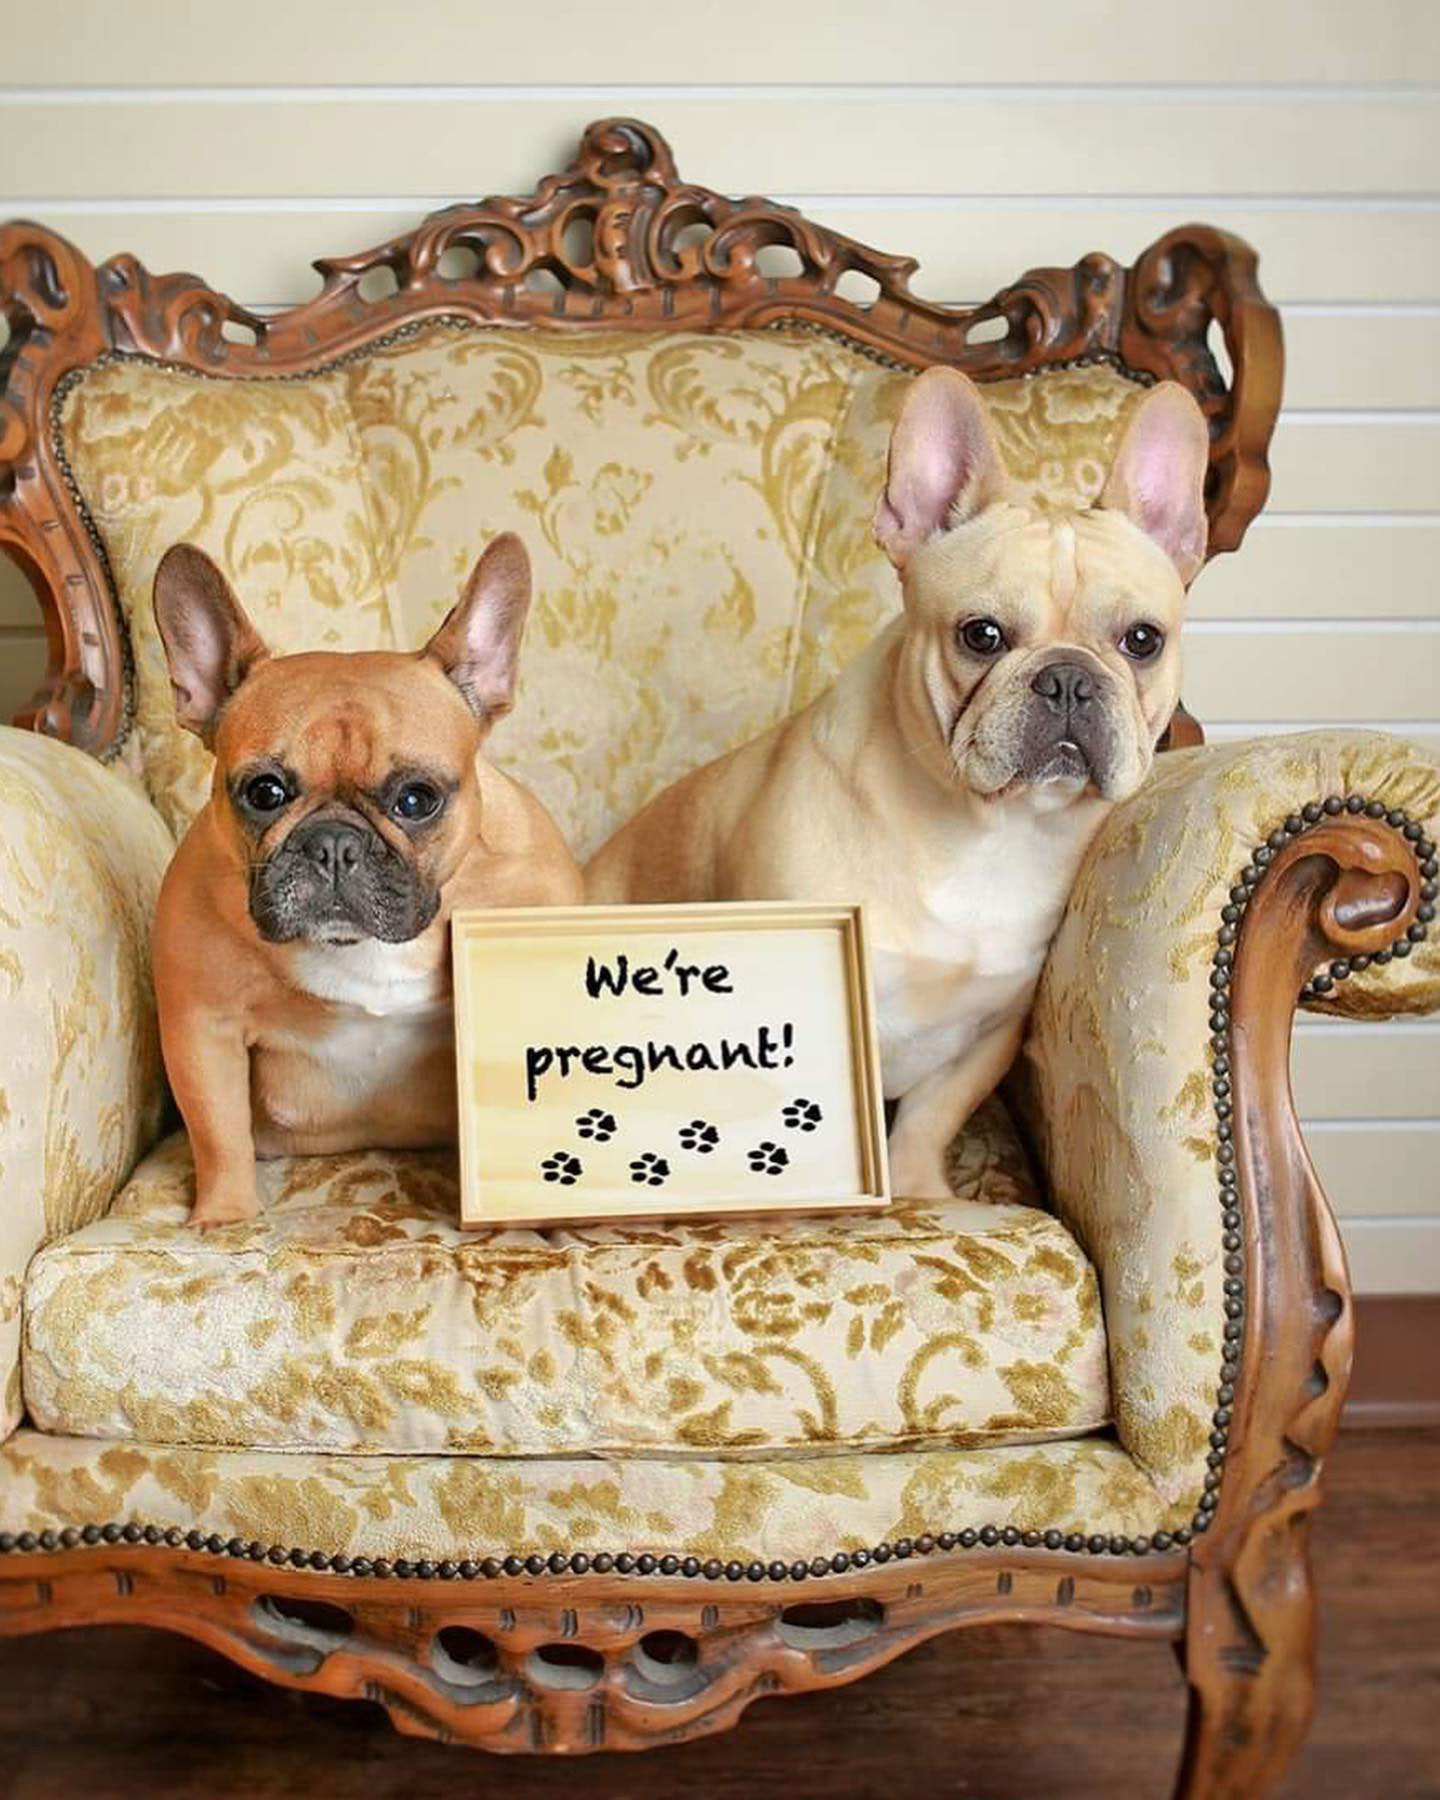 Texas French Bulldog Couple Poses for Maternity Shoot to Prepare for Puppies